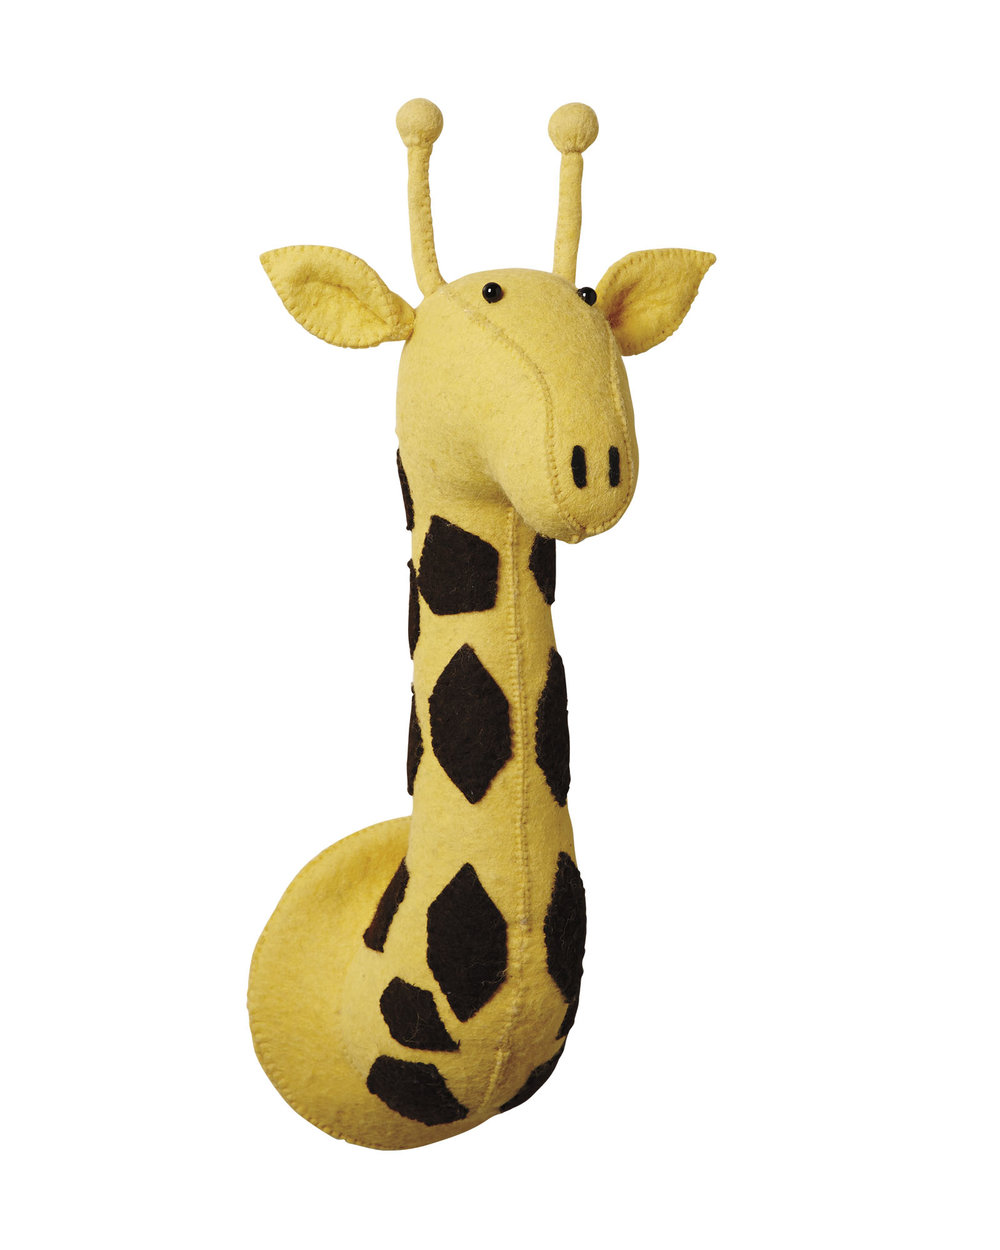 mounted stuffed giraffe